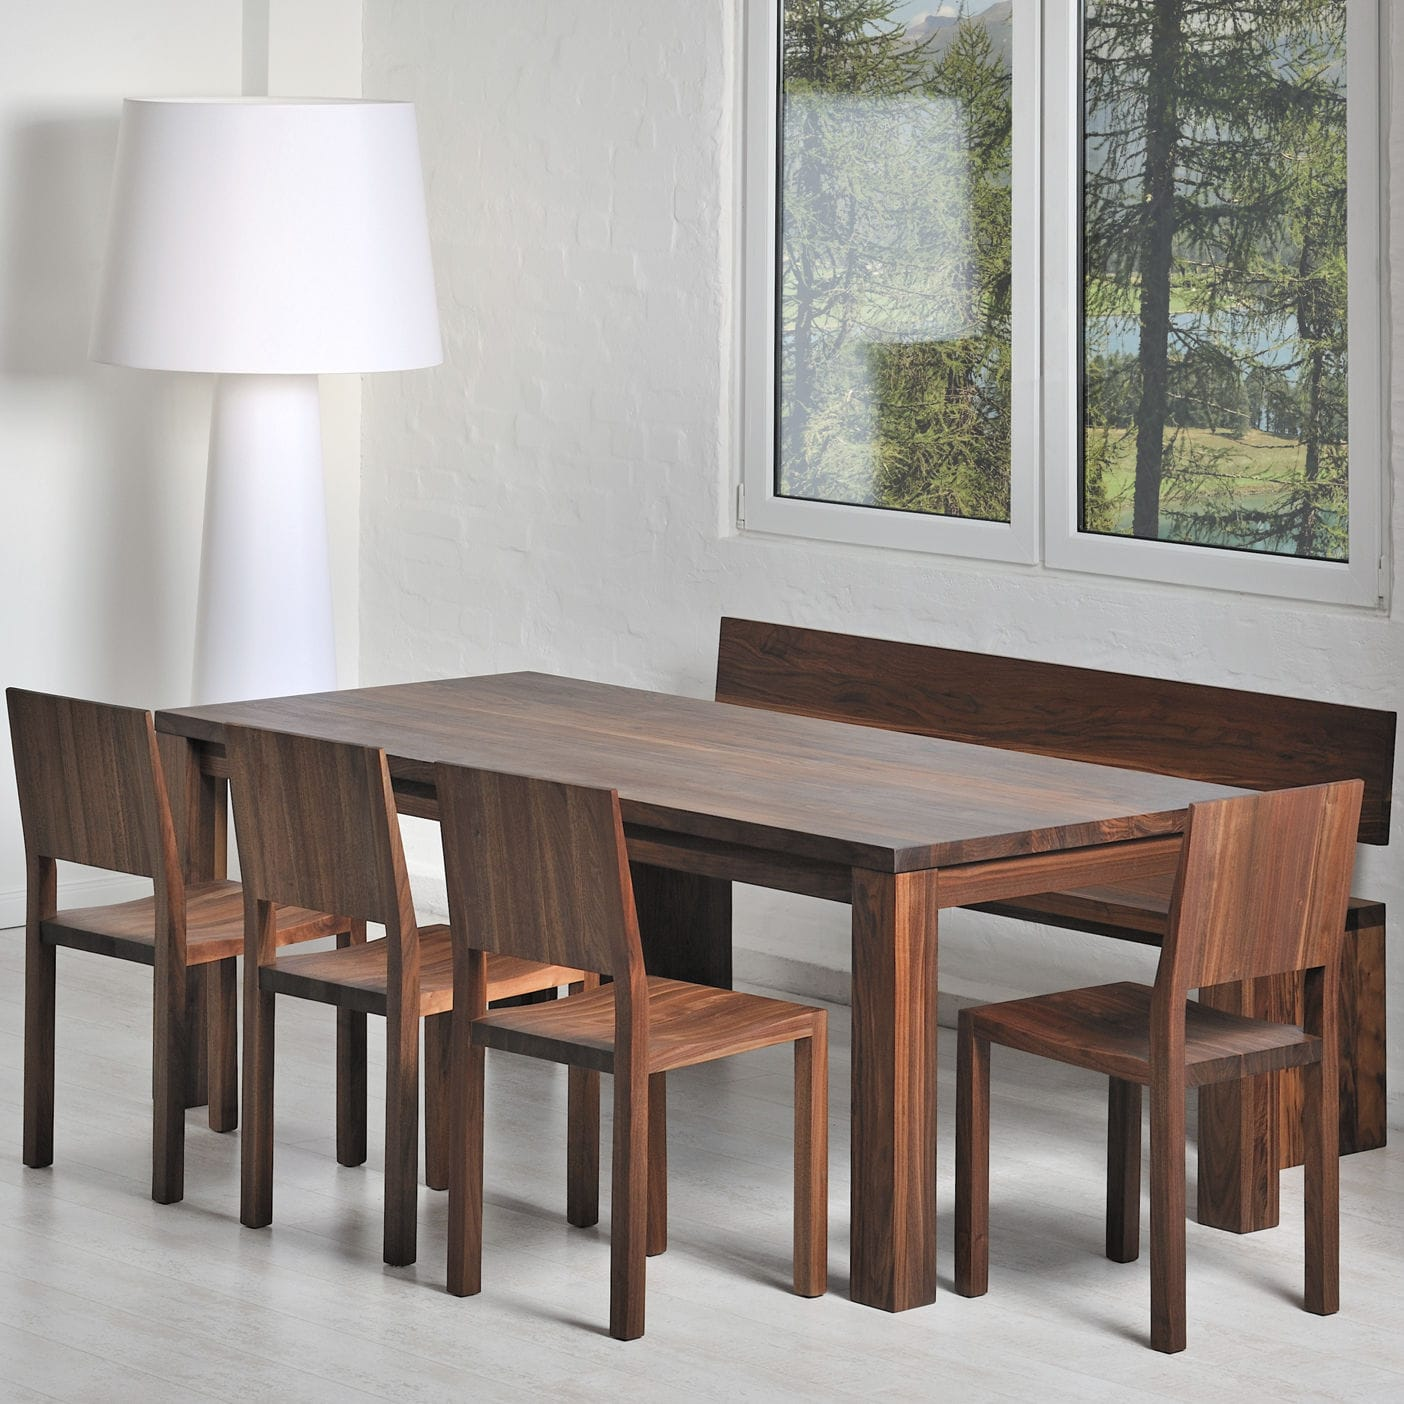 Charming Contemporary Dining Table / Solid Wood / Rectangular / Extending   CUBUS